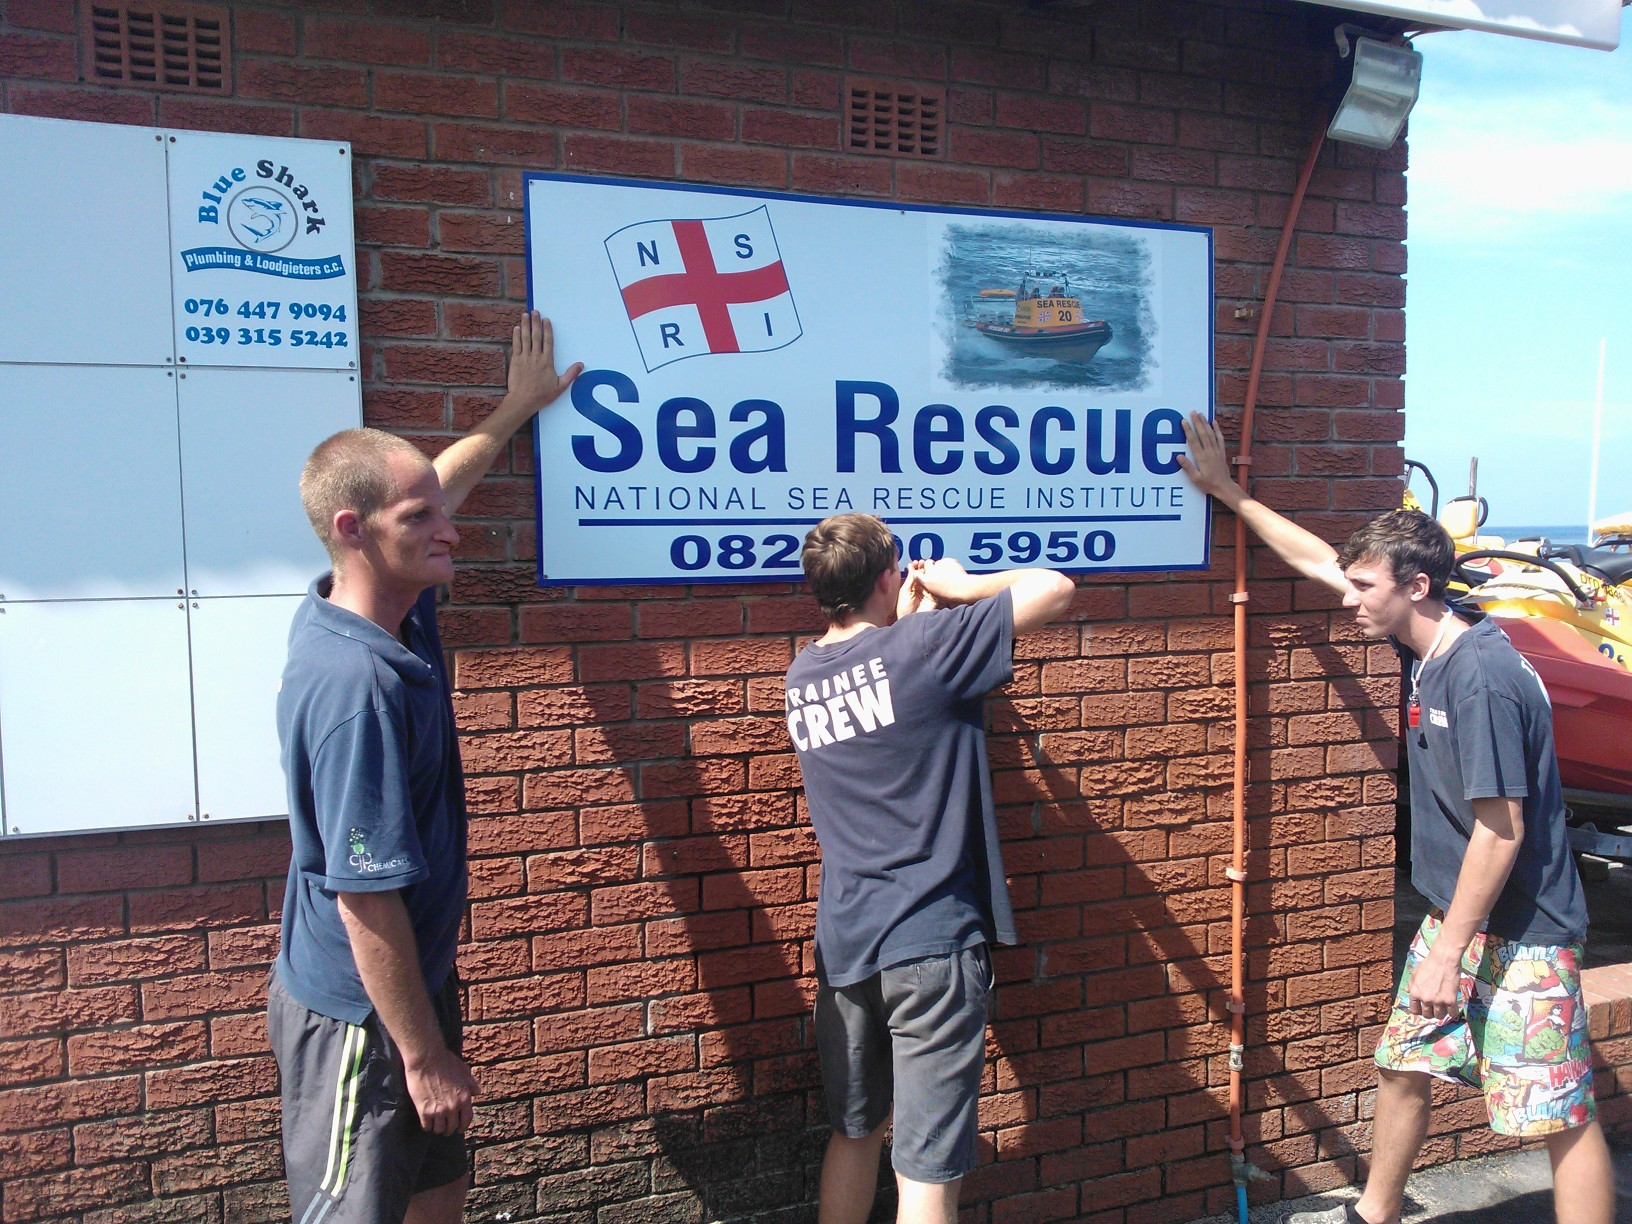 Crew member, Justin Watson (l), trainee Morne Beattie (c), and his brother, trainee Ruahn Beattie (r), fitting the signage on the town side of the base.